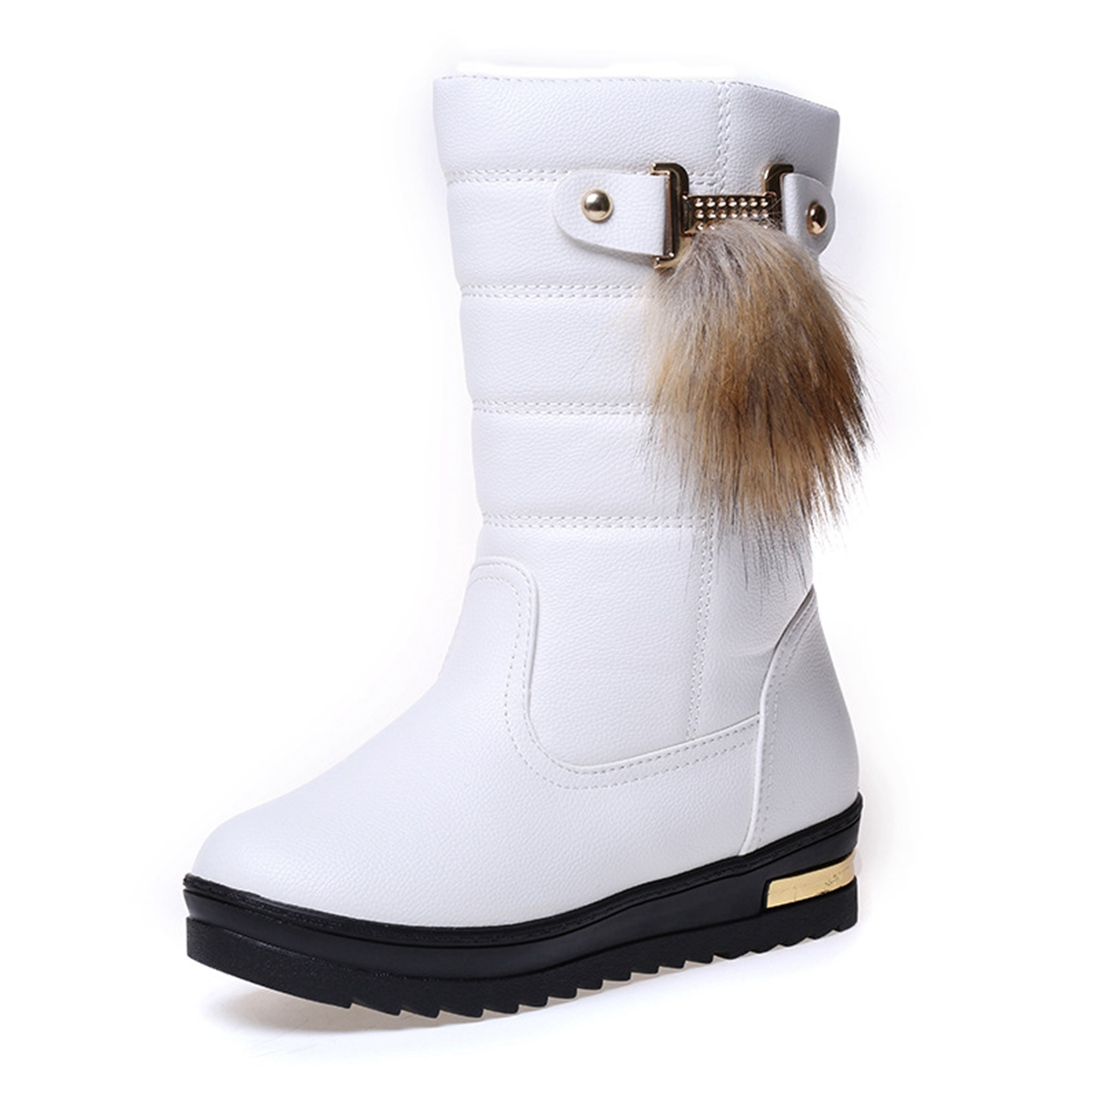 Popular Girls Snow Boots Size 2-Buy Cheap Girls Snow Boots Size 2 ...